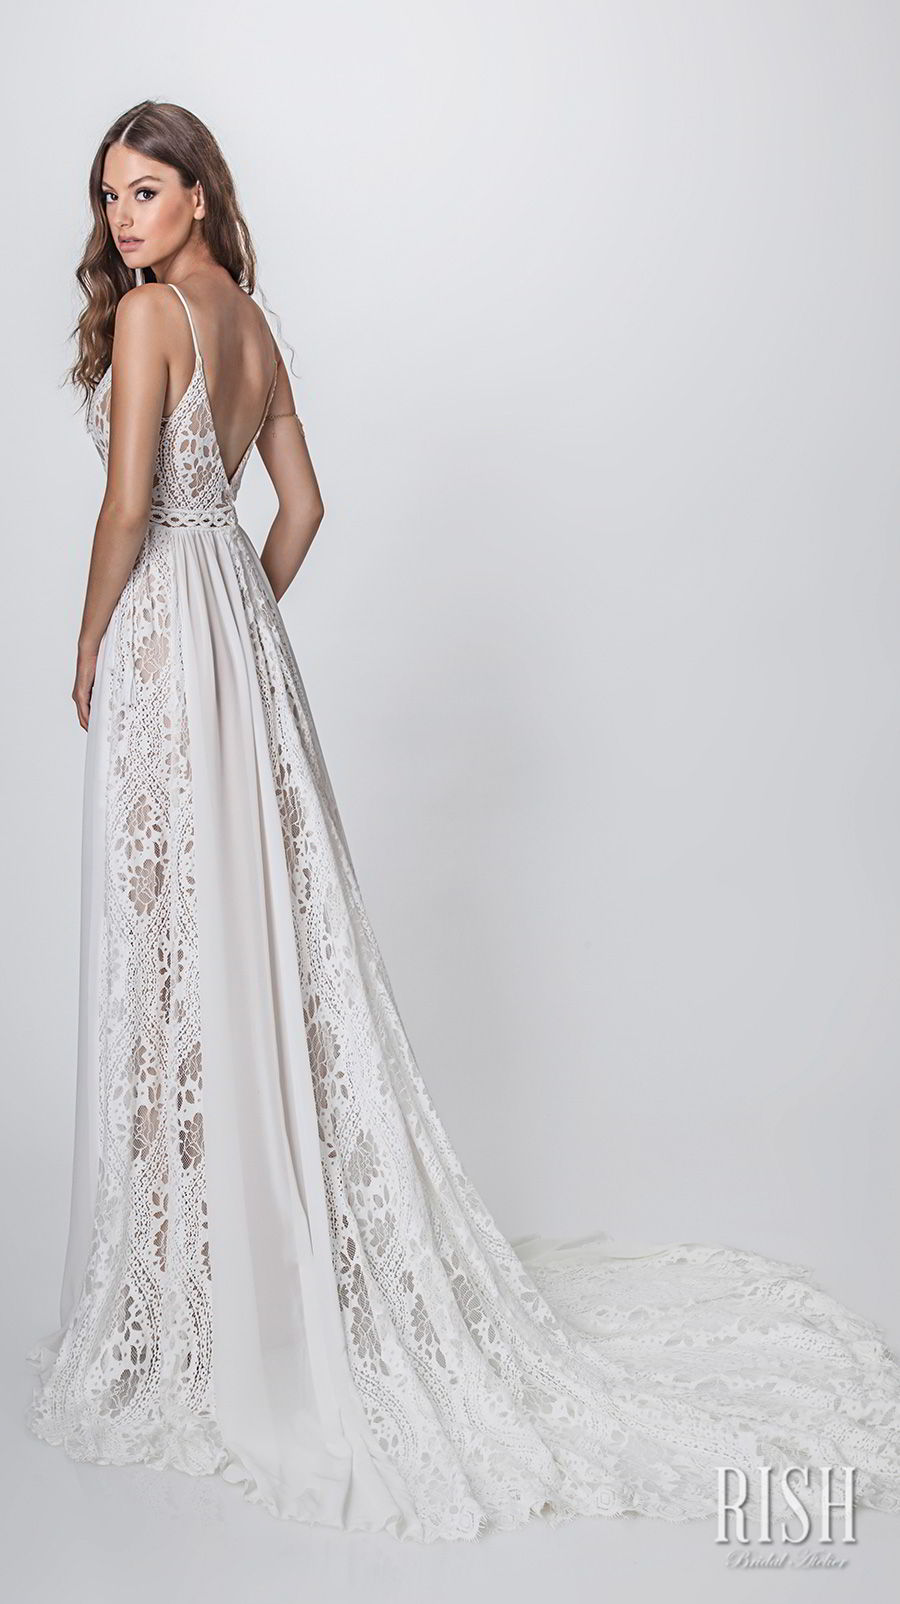 rish bridal sun dance 2018 sleeveless spaghetti strap sweetheart neckline full embellishment romantic bohemian soft a  line wedding dress open v back chapel train (sierra) bv